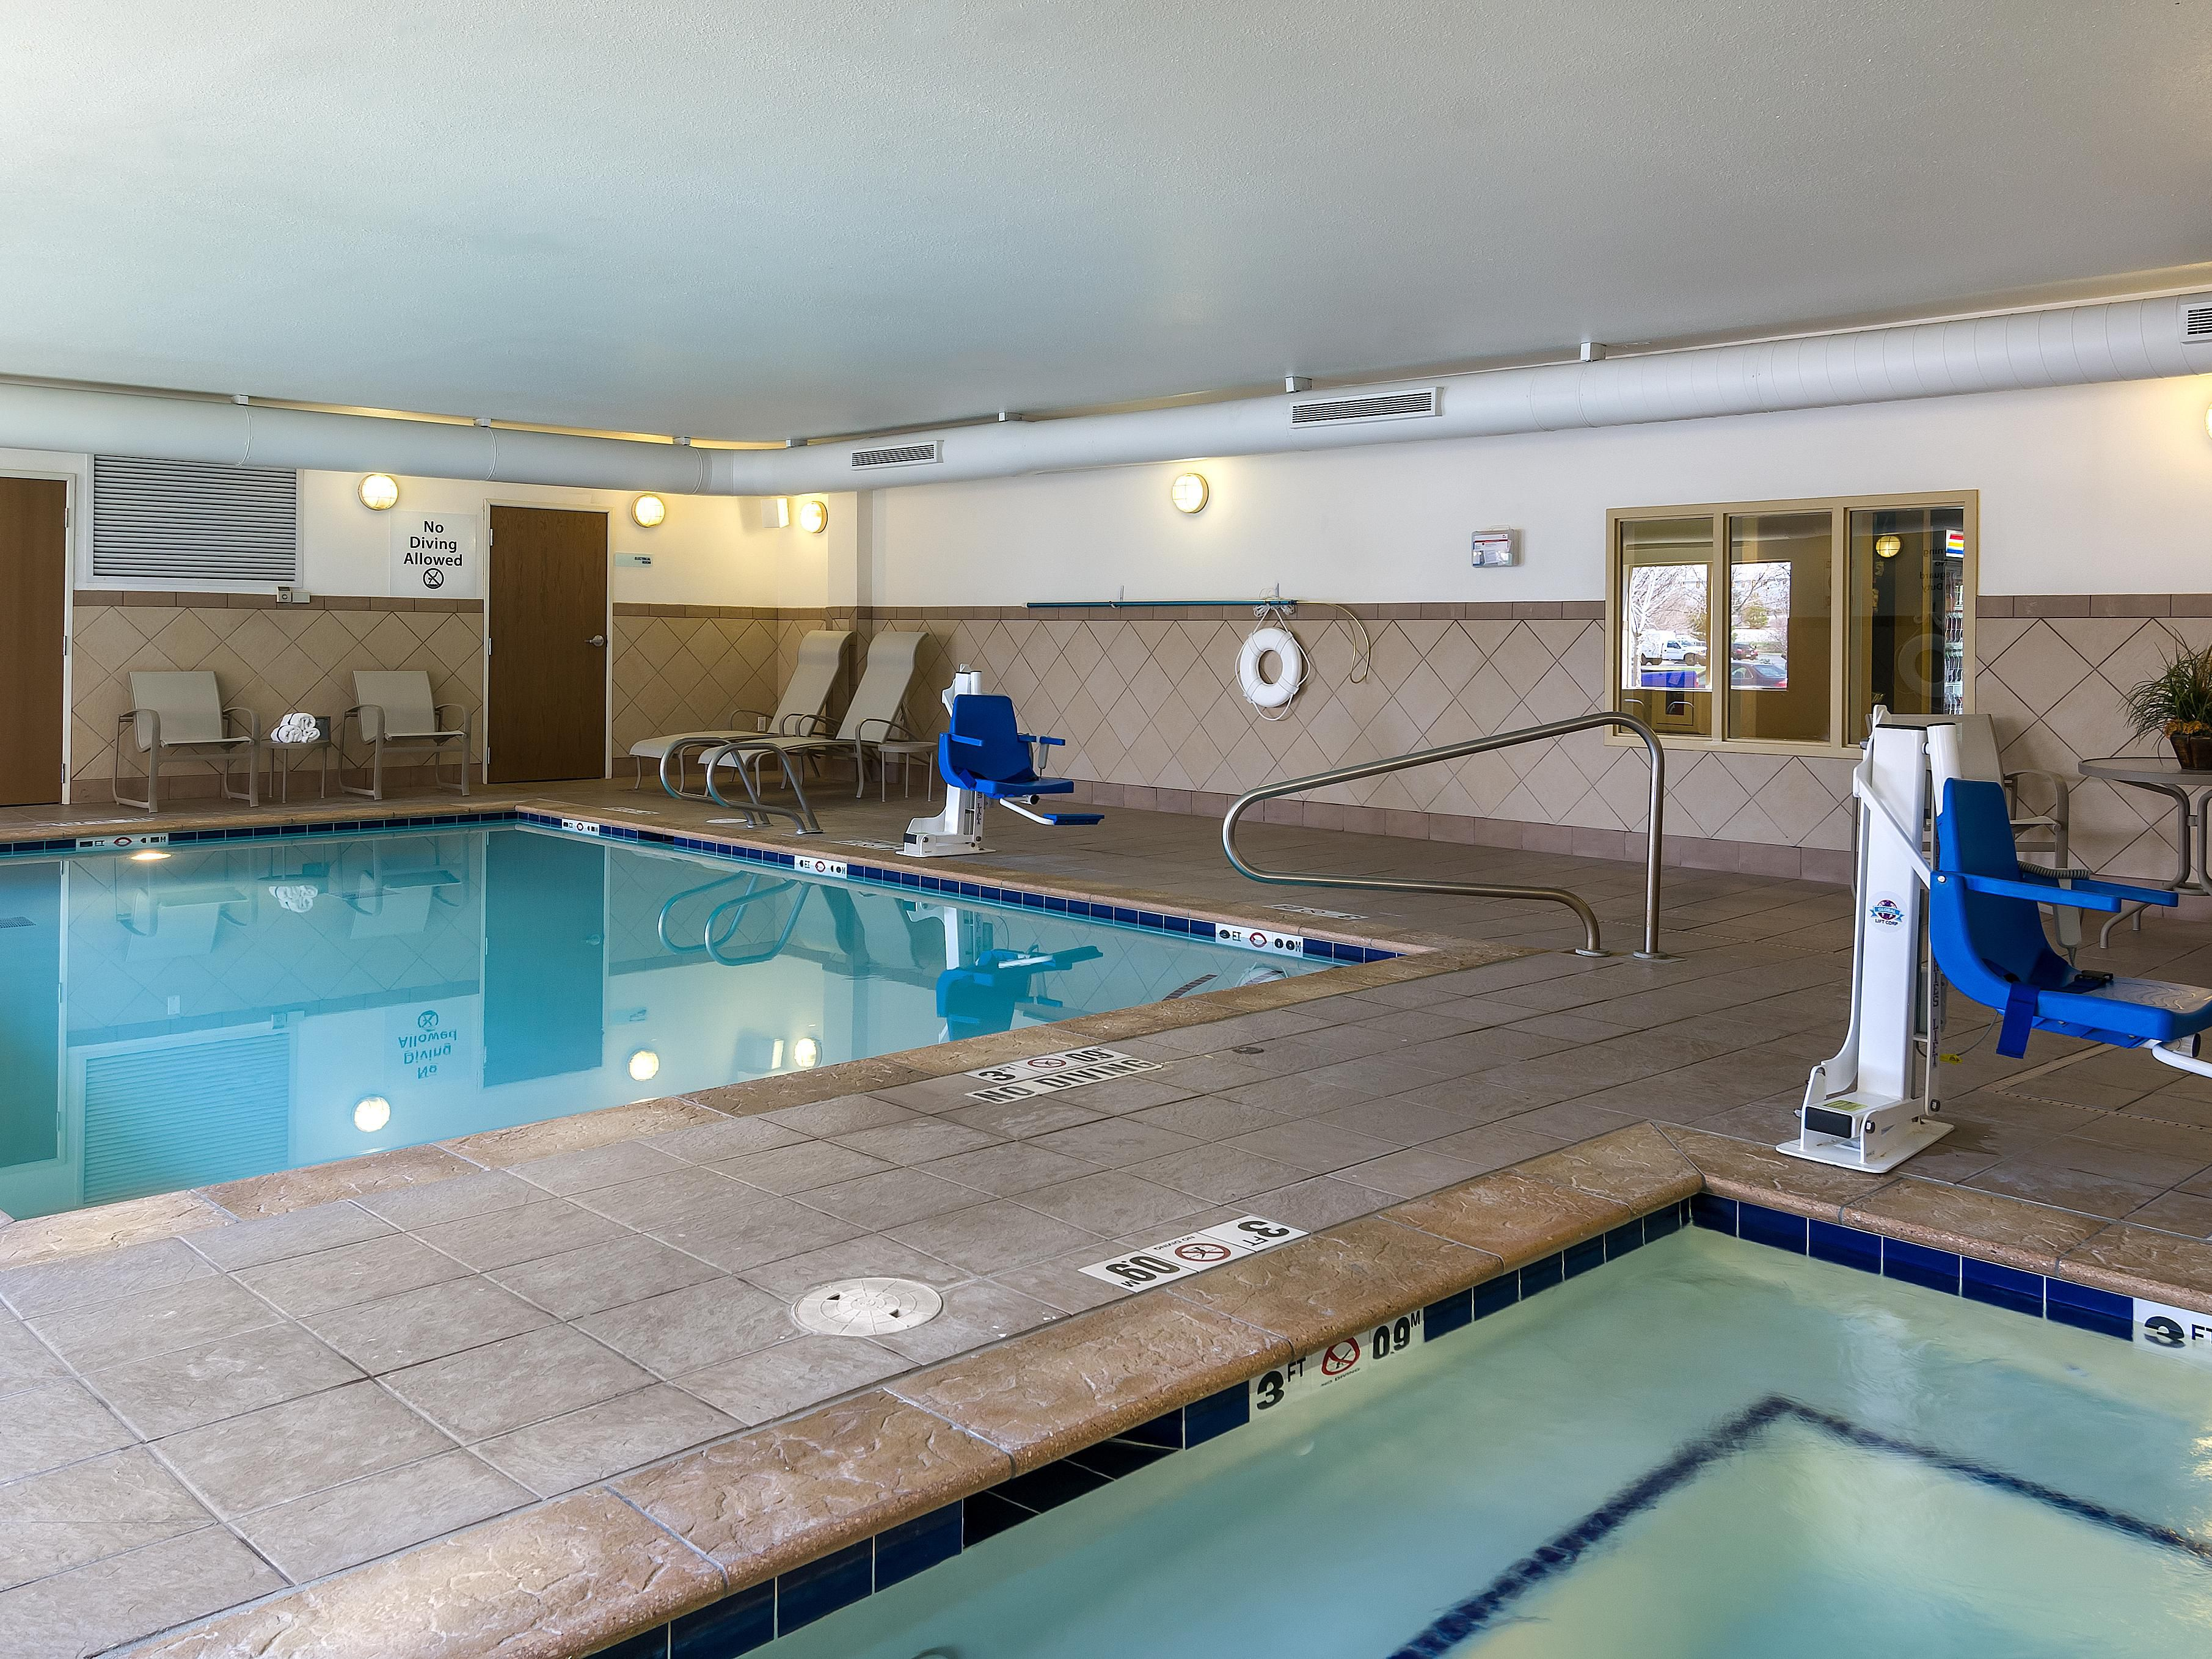 Swimming pool and hot jacuzzi spa are available to use 24 hours!